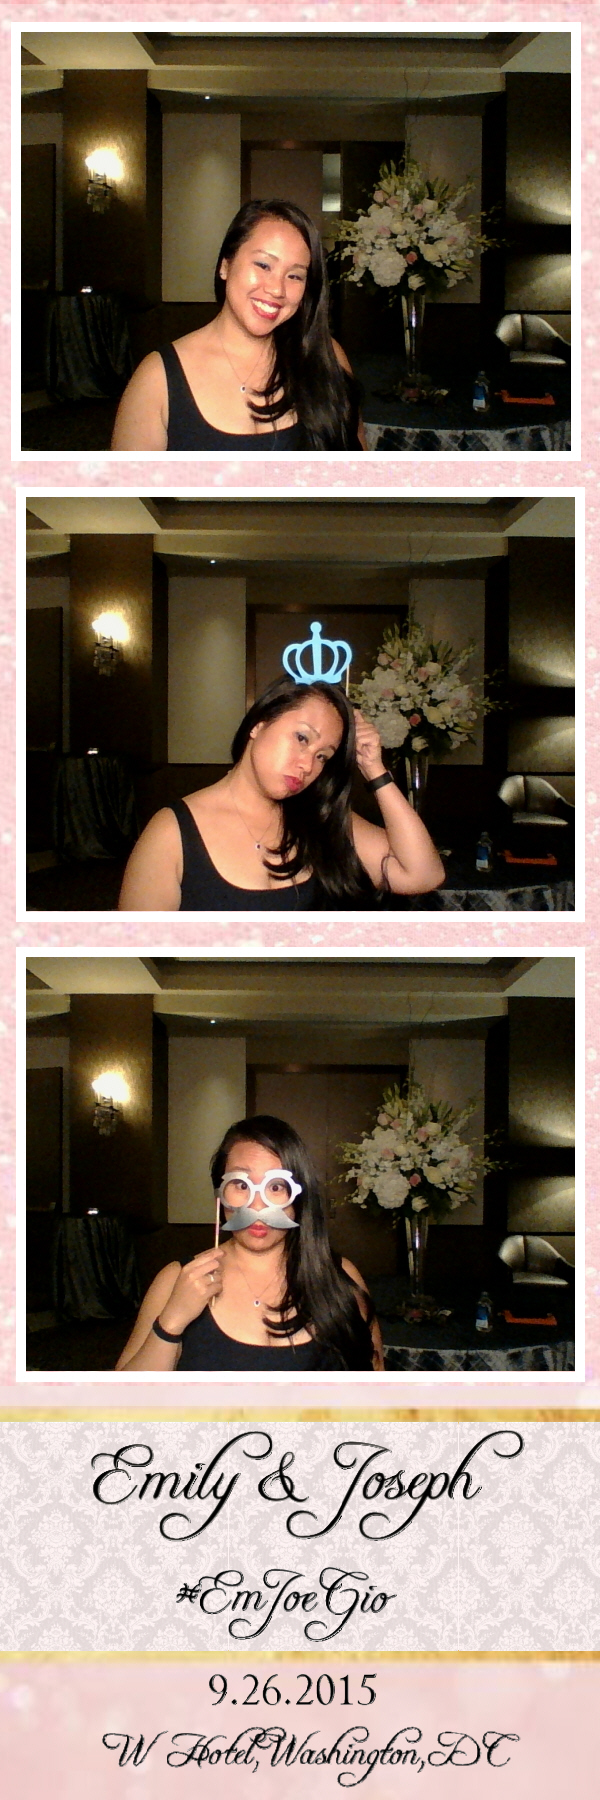 Guest House Events Photo Booth E&J (1).jpg